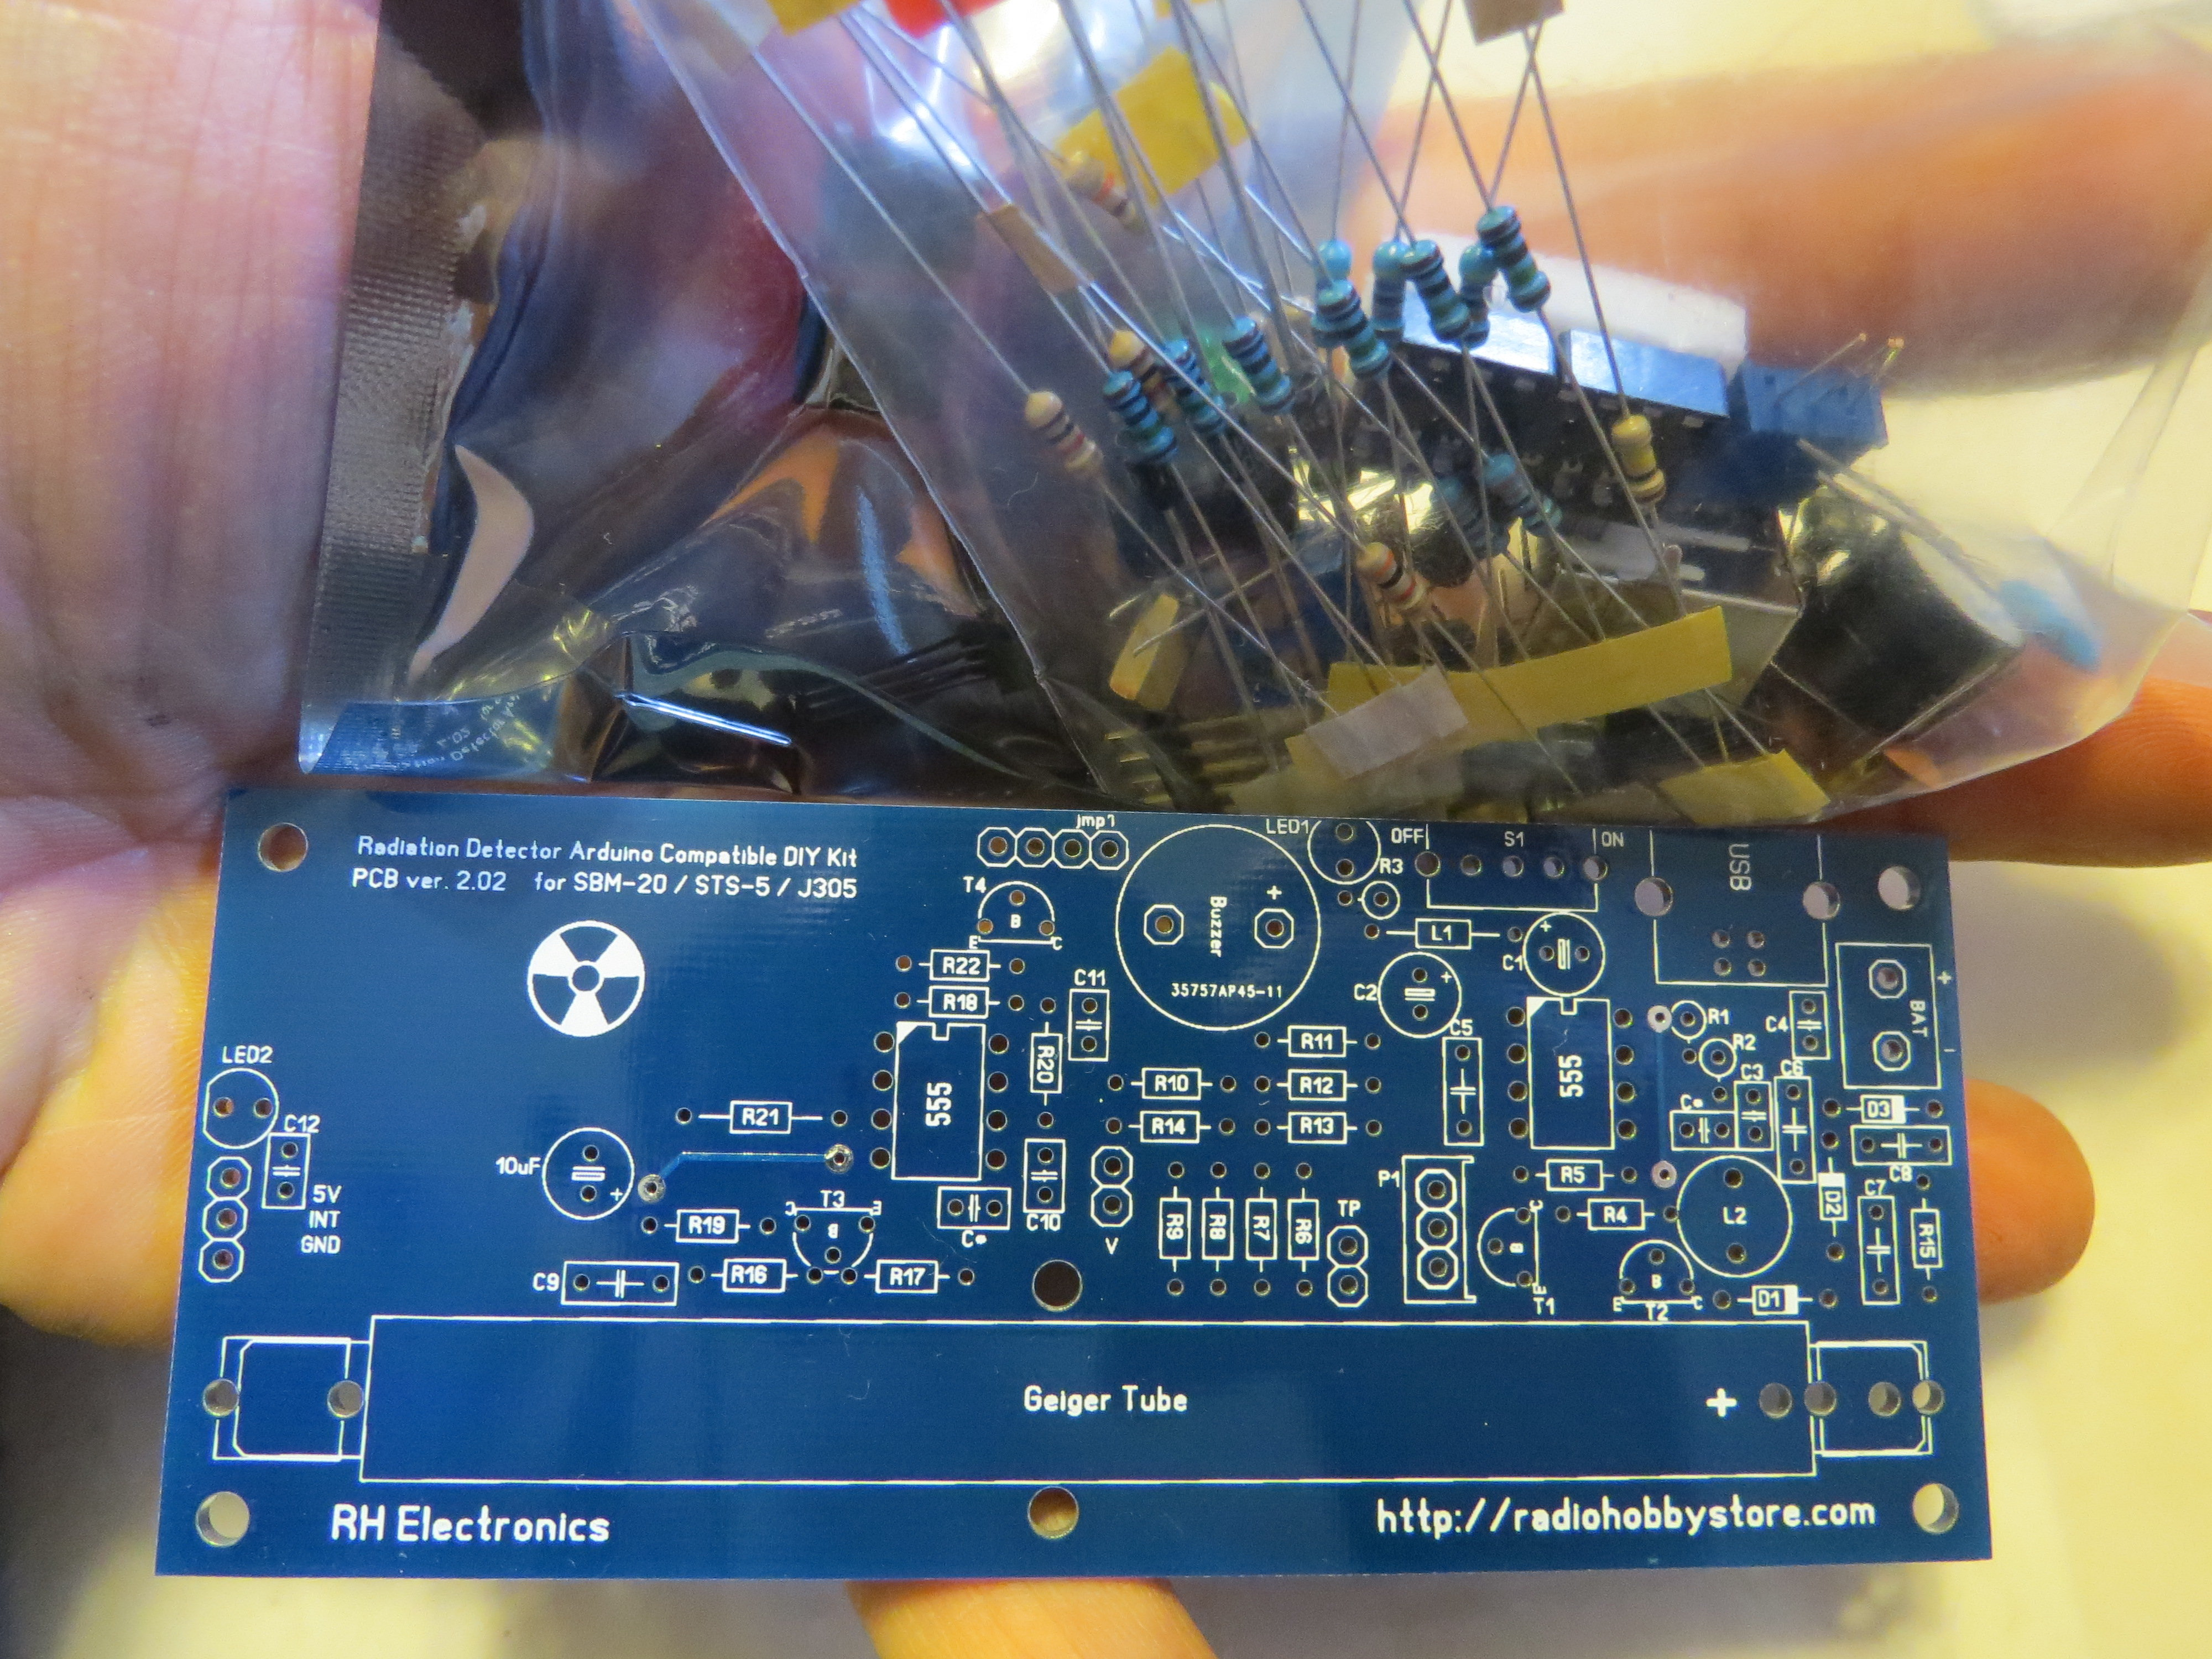 Prepping 101 Diy Geiger Counter The Basics Of Measuring Radiation Fig 1a Basic Circuit Kit Starts As A Handful Components And Board But No Fear